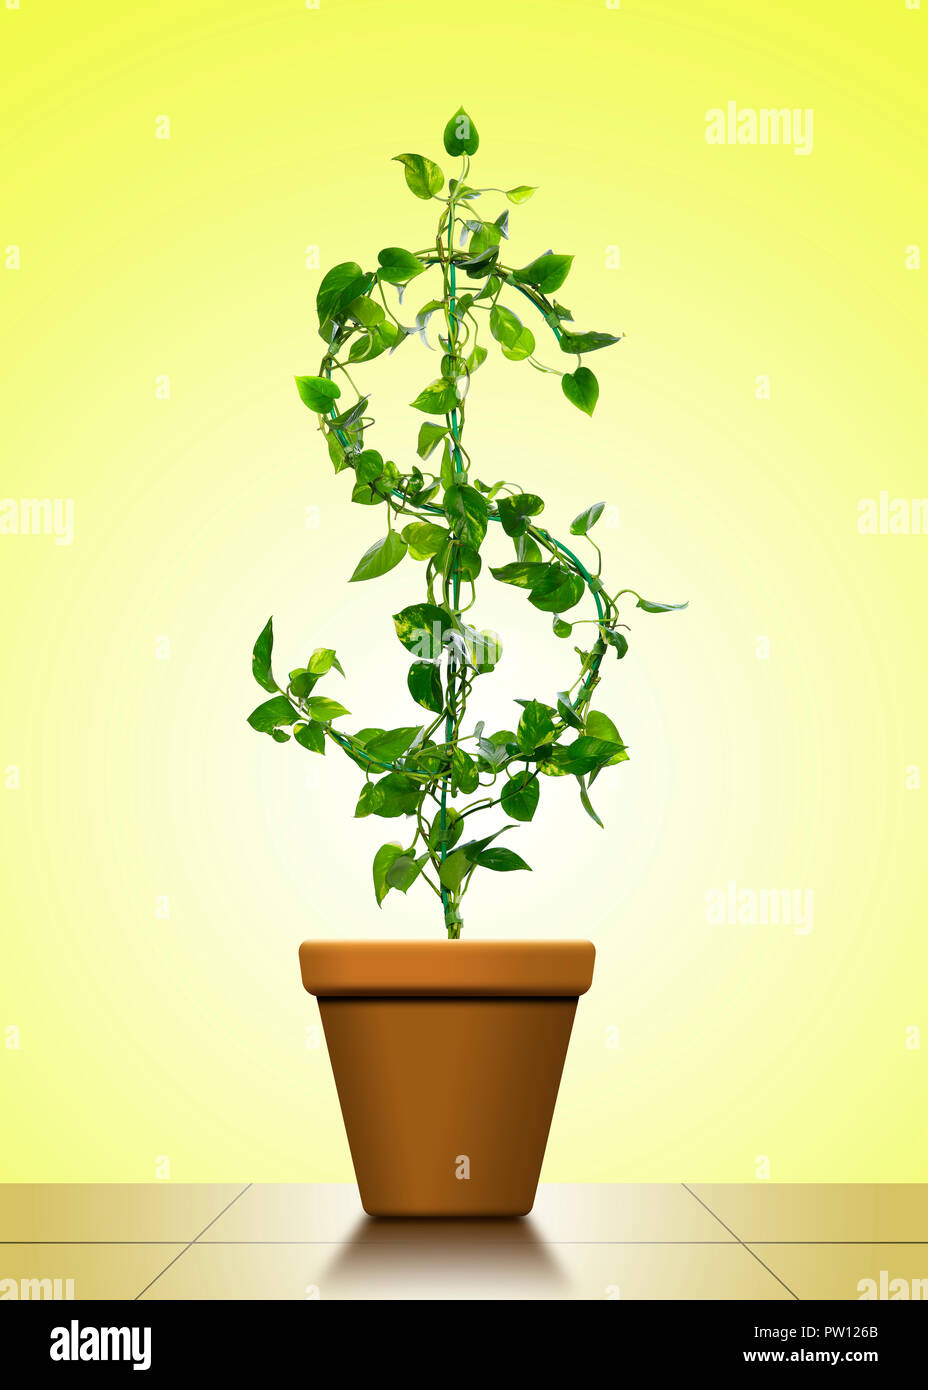 Concept A $ Dollar Sign shaped House Plant of Golden Pothos, Money Growth, Portfolio Management, Wealth, Care, Taking Care Business - Stock Image